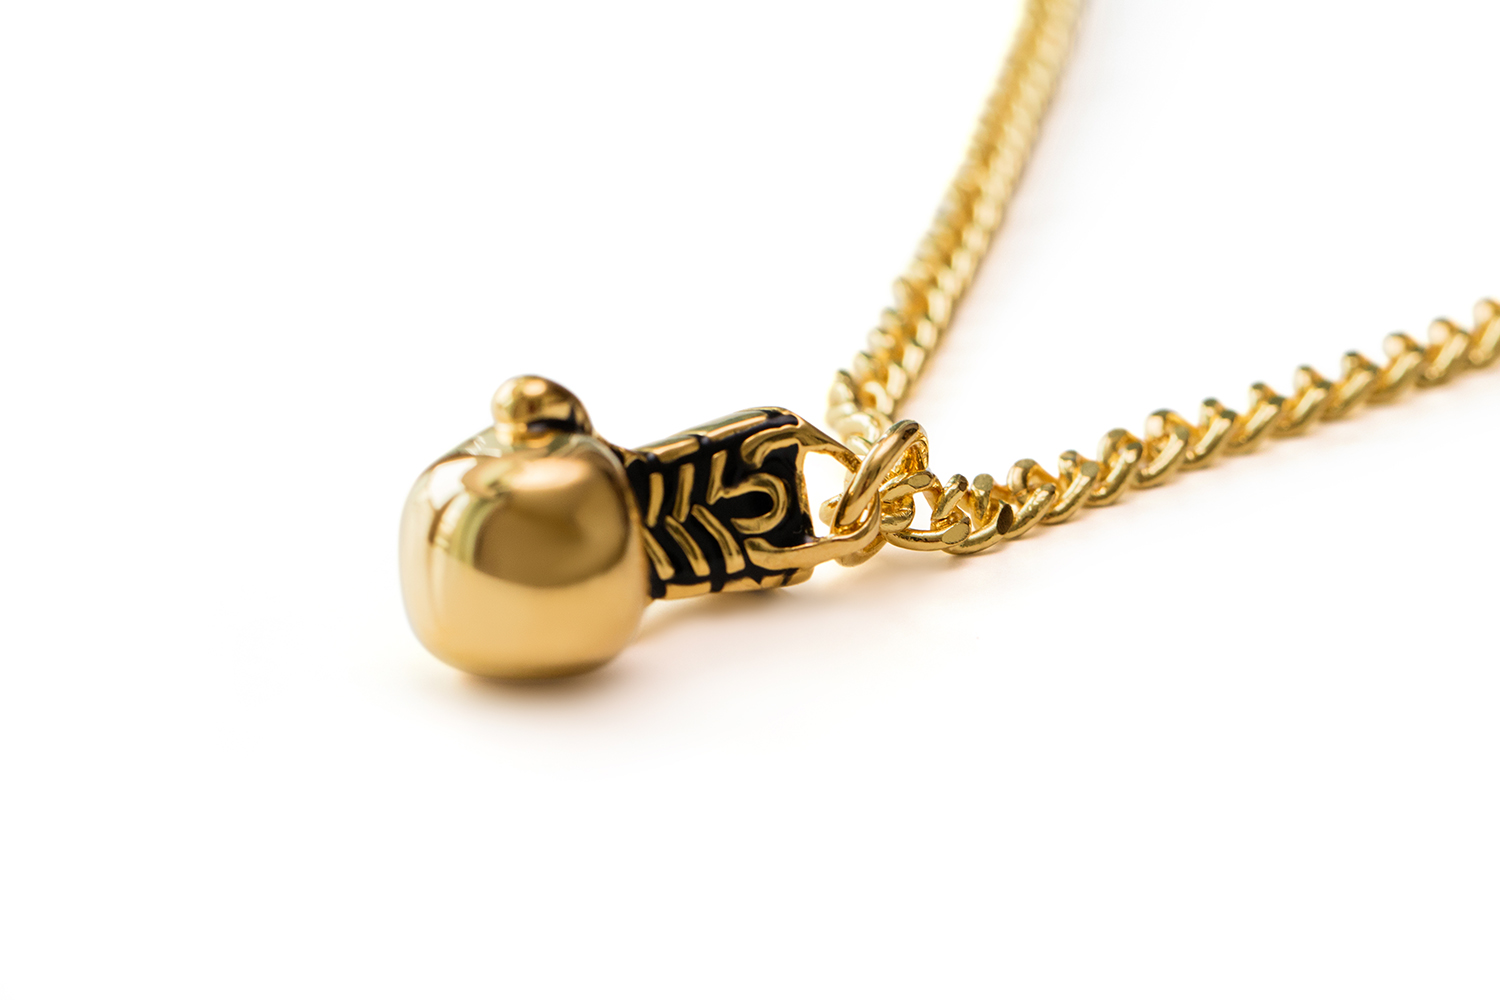 Gold boxing glove necklace fit selection gold boxing glove necklace aloadofball Image collections